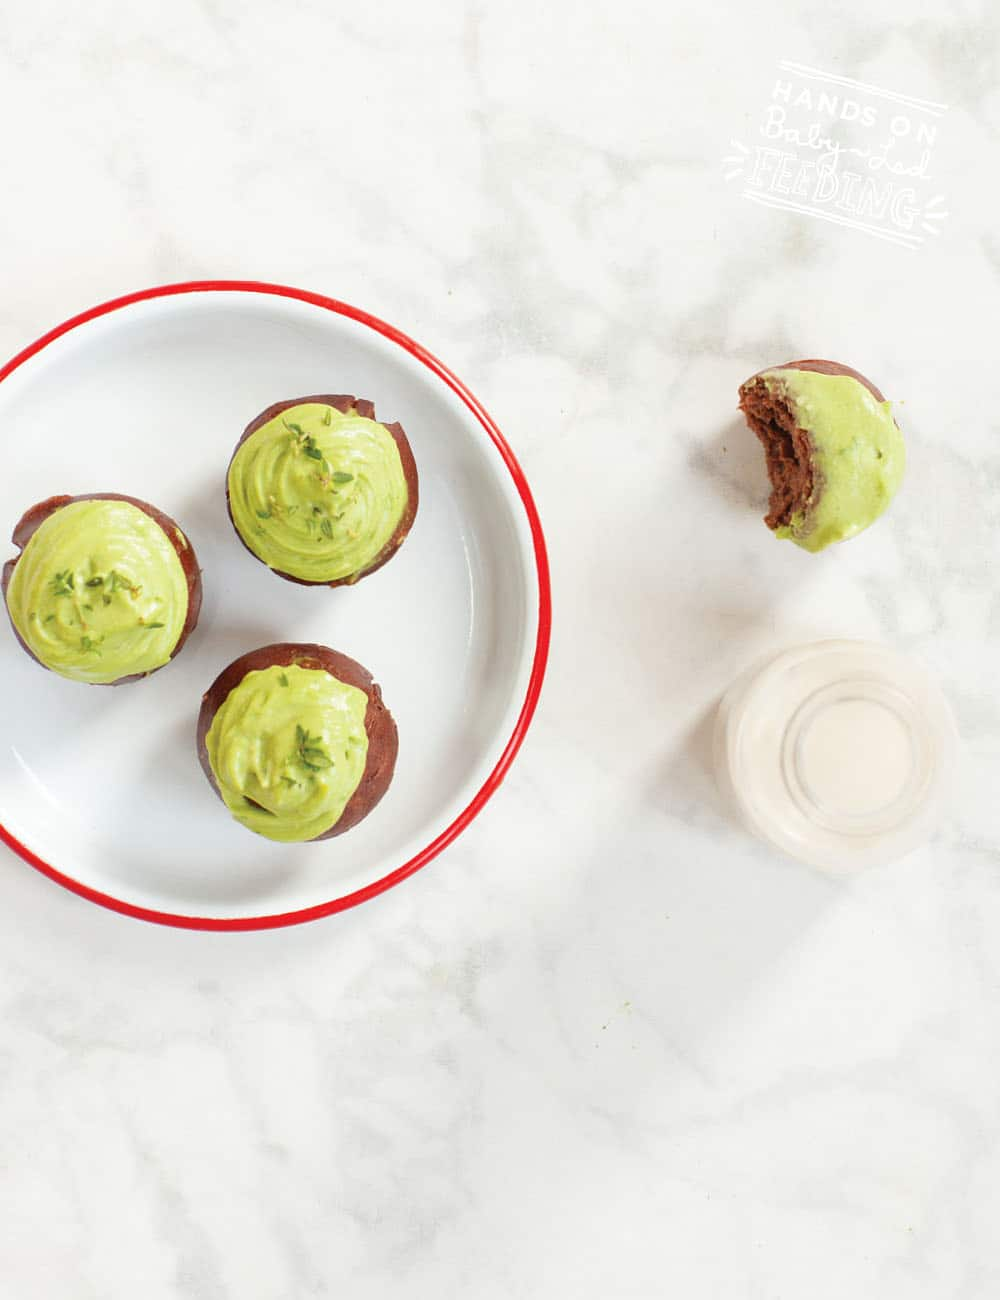 Chocolate Muffins with Green Frosting Recipe Images3